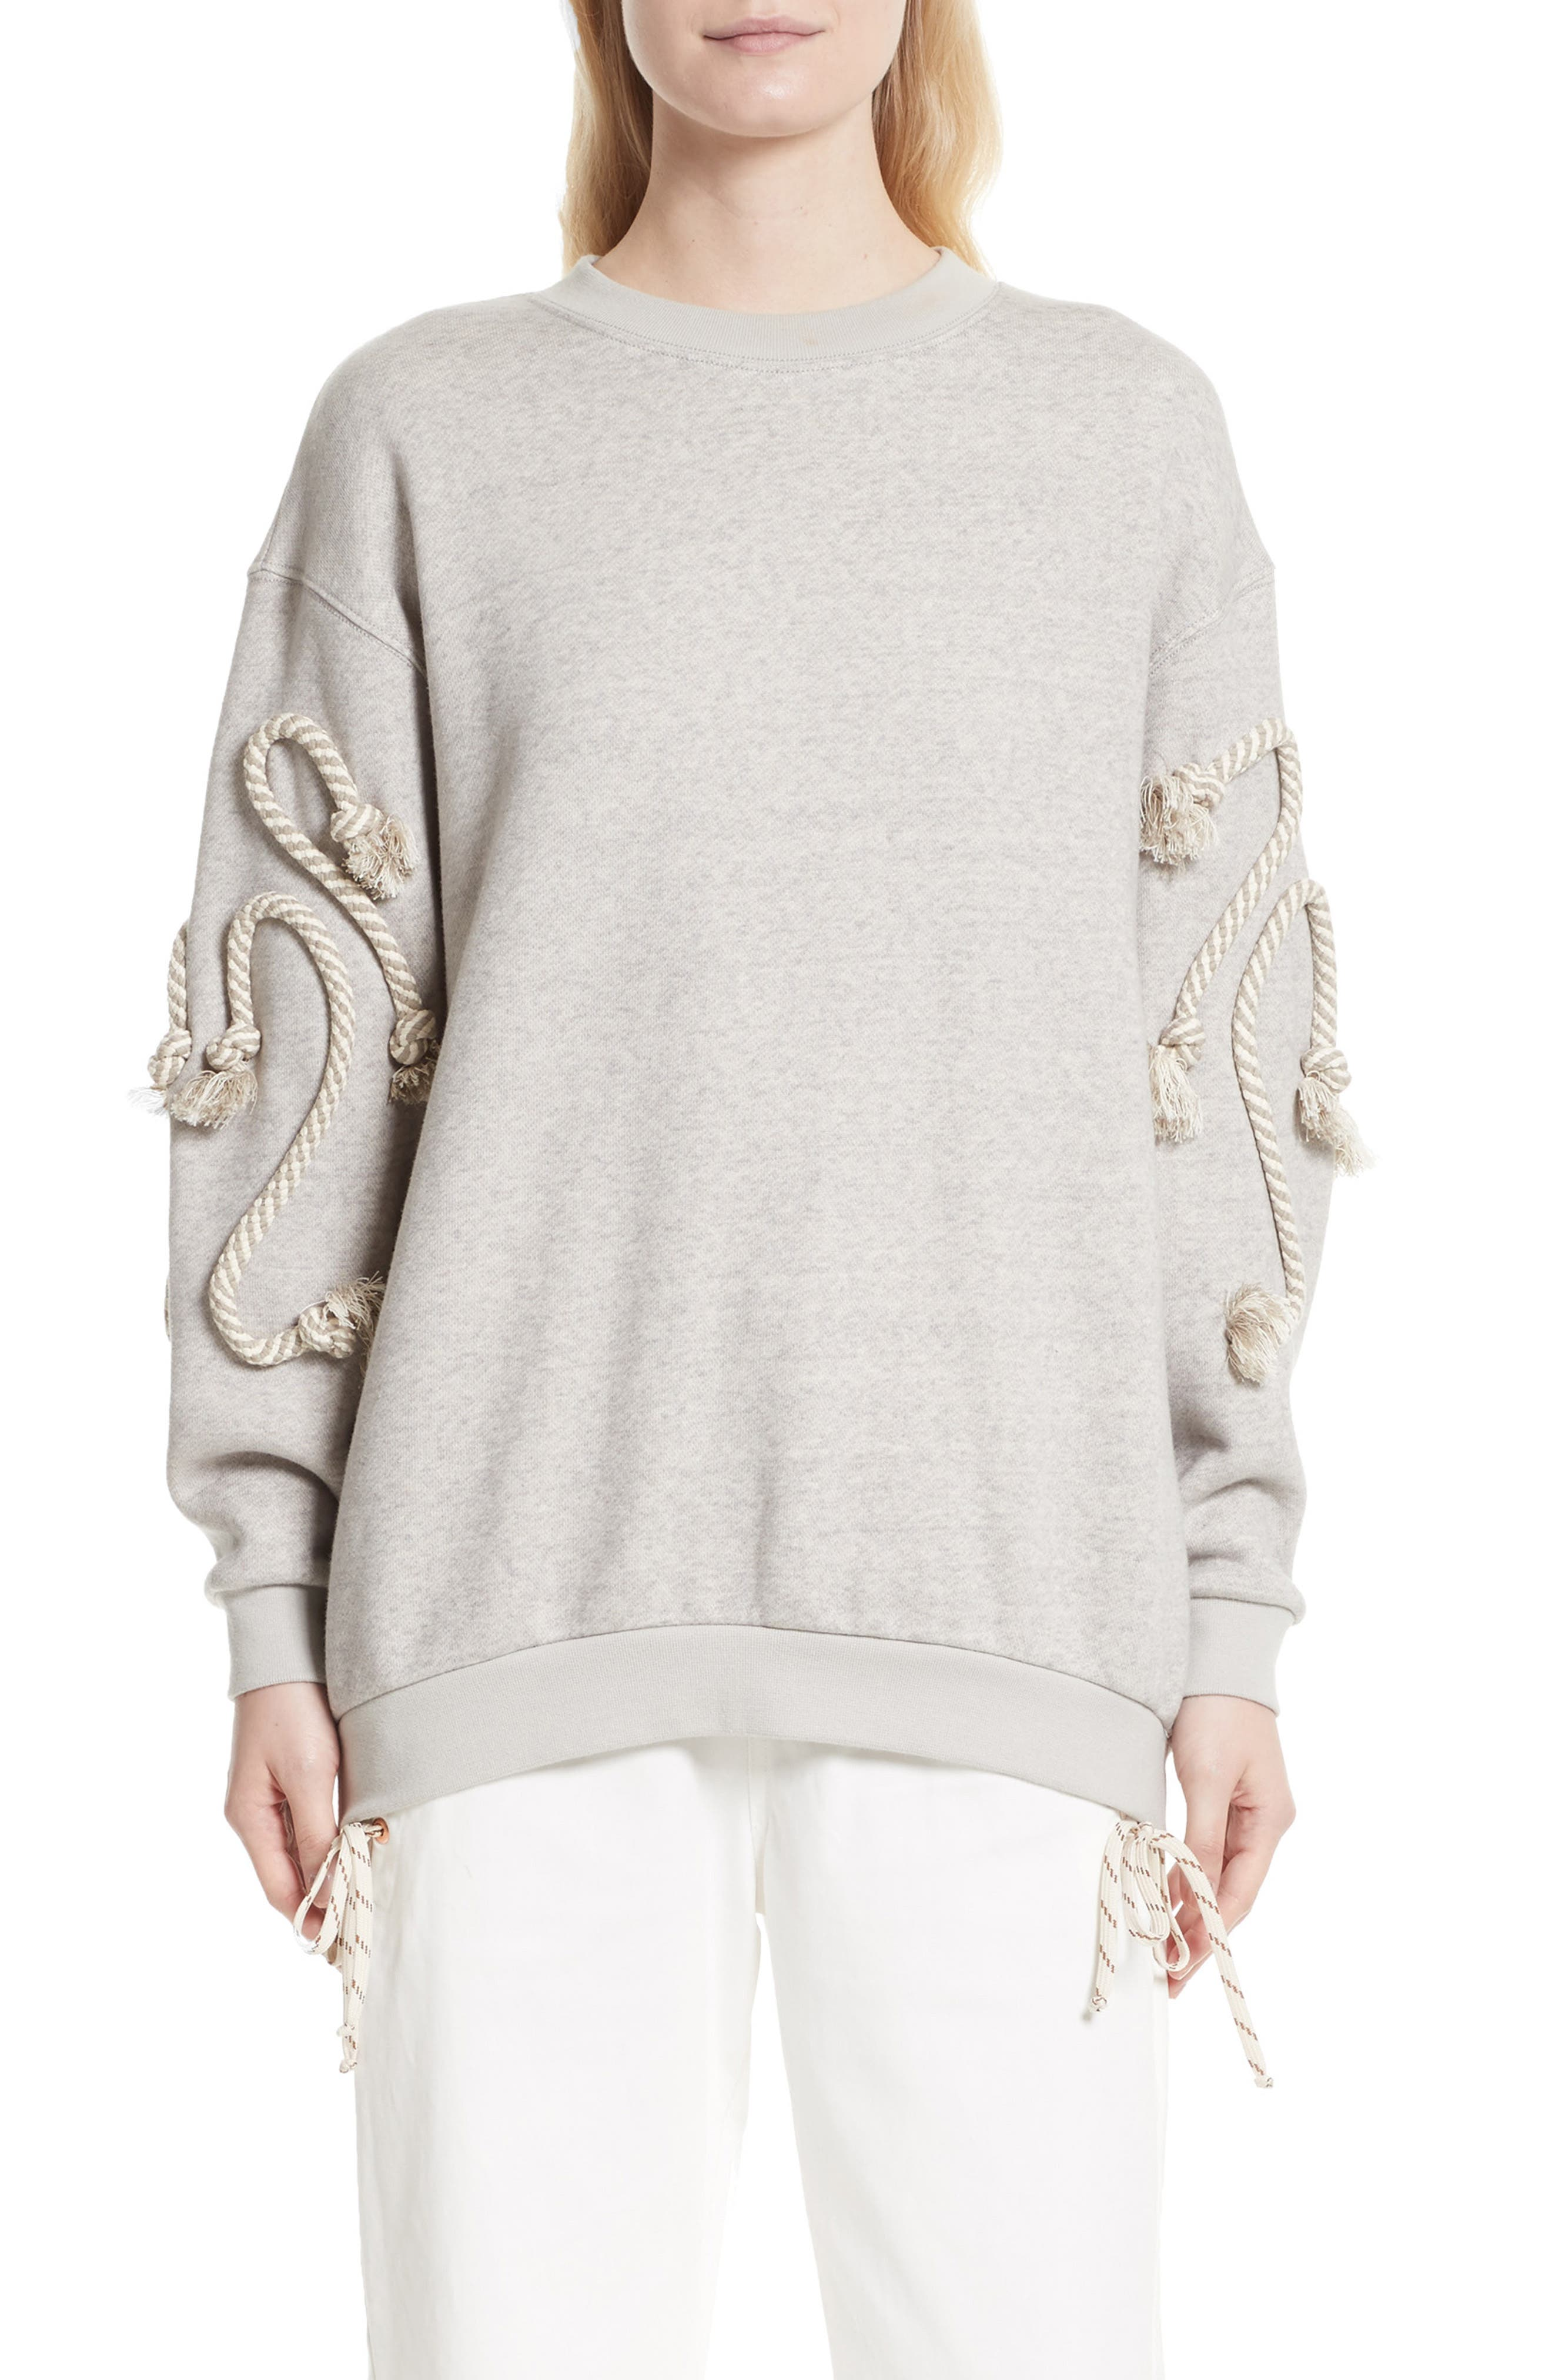 Main Image - See by Chloé Rope Trim Sweater